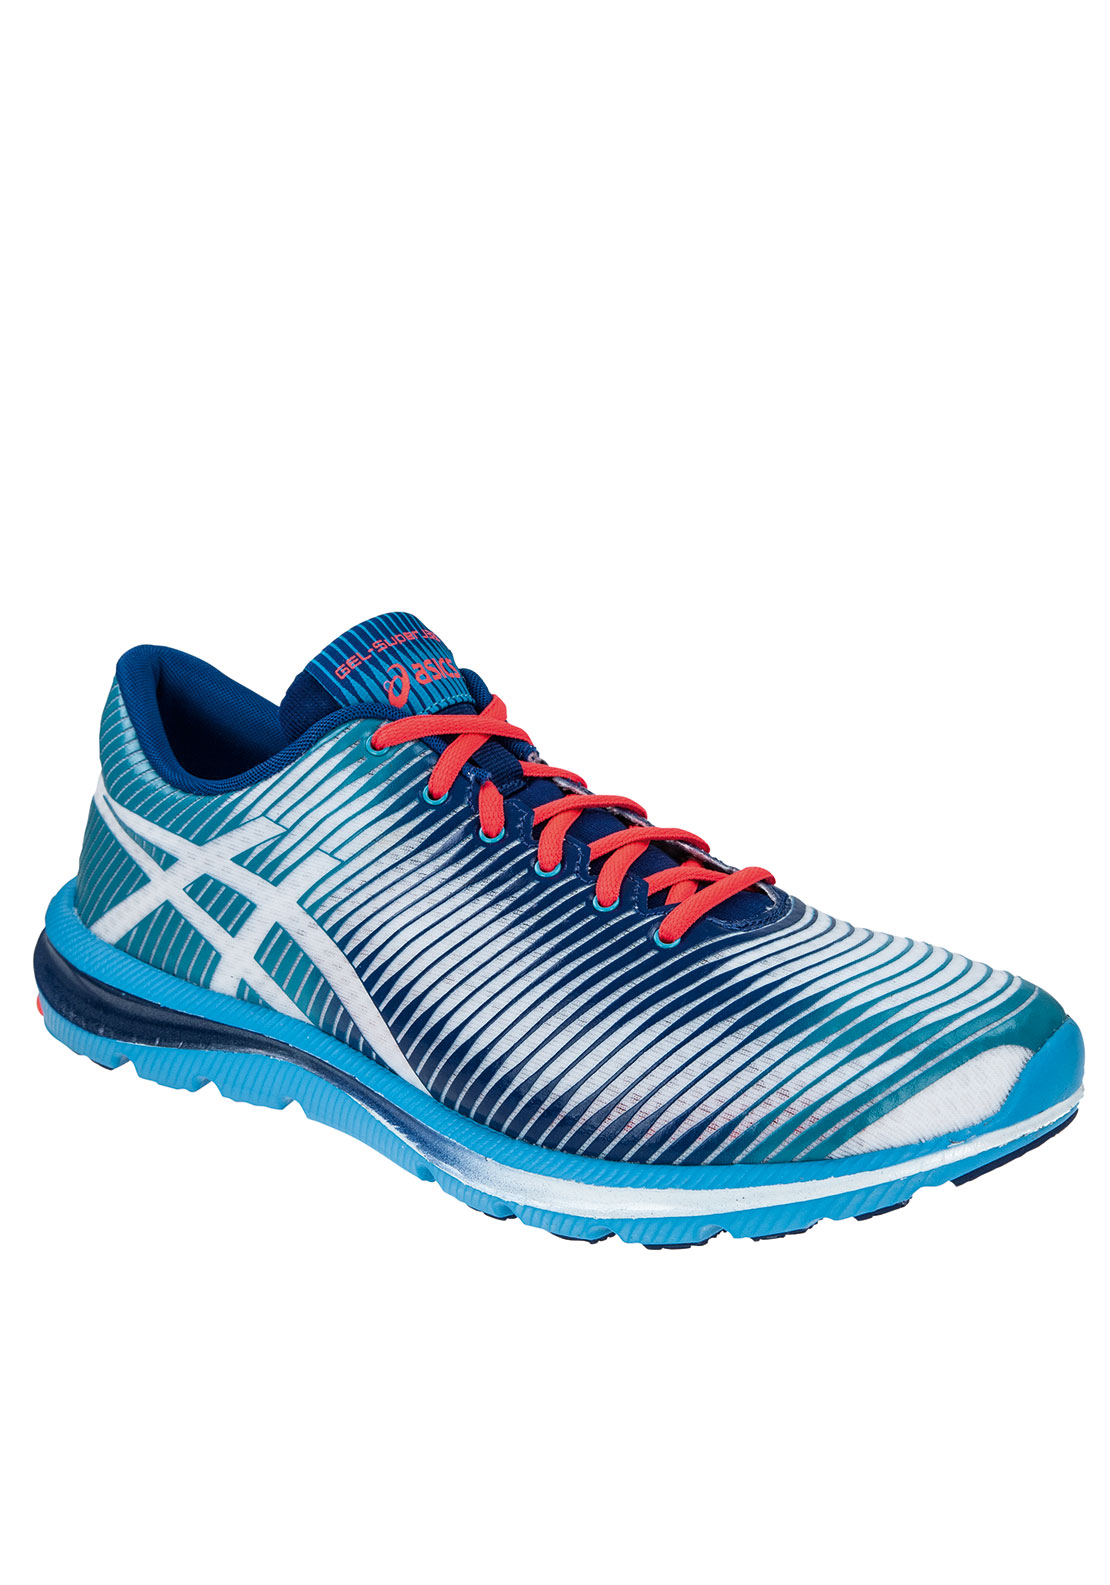 Asics Men's Gel-Super J33 Trainer, Blue